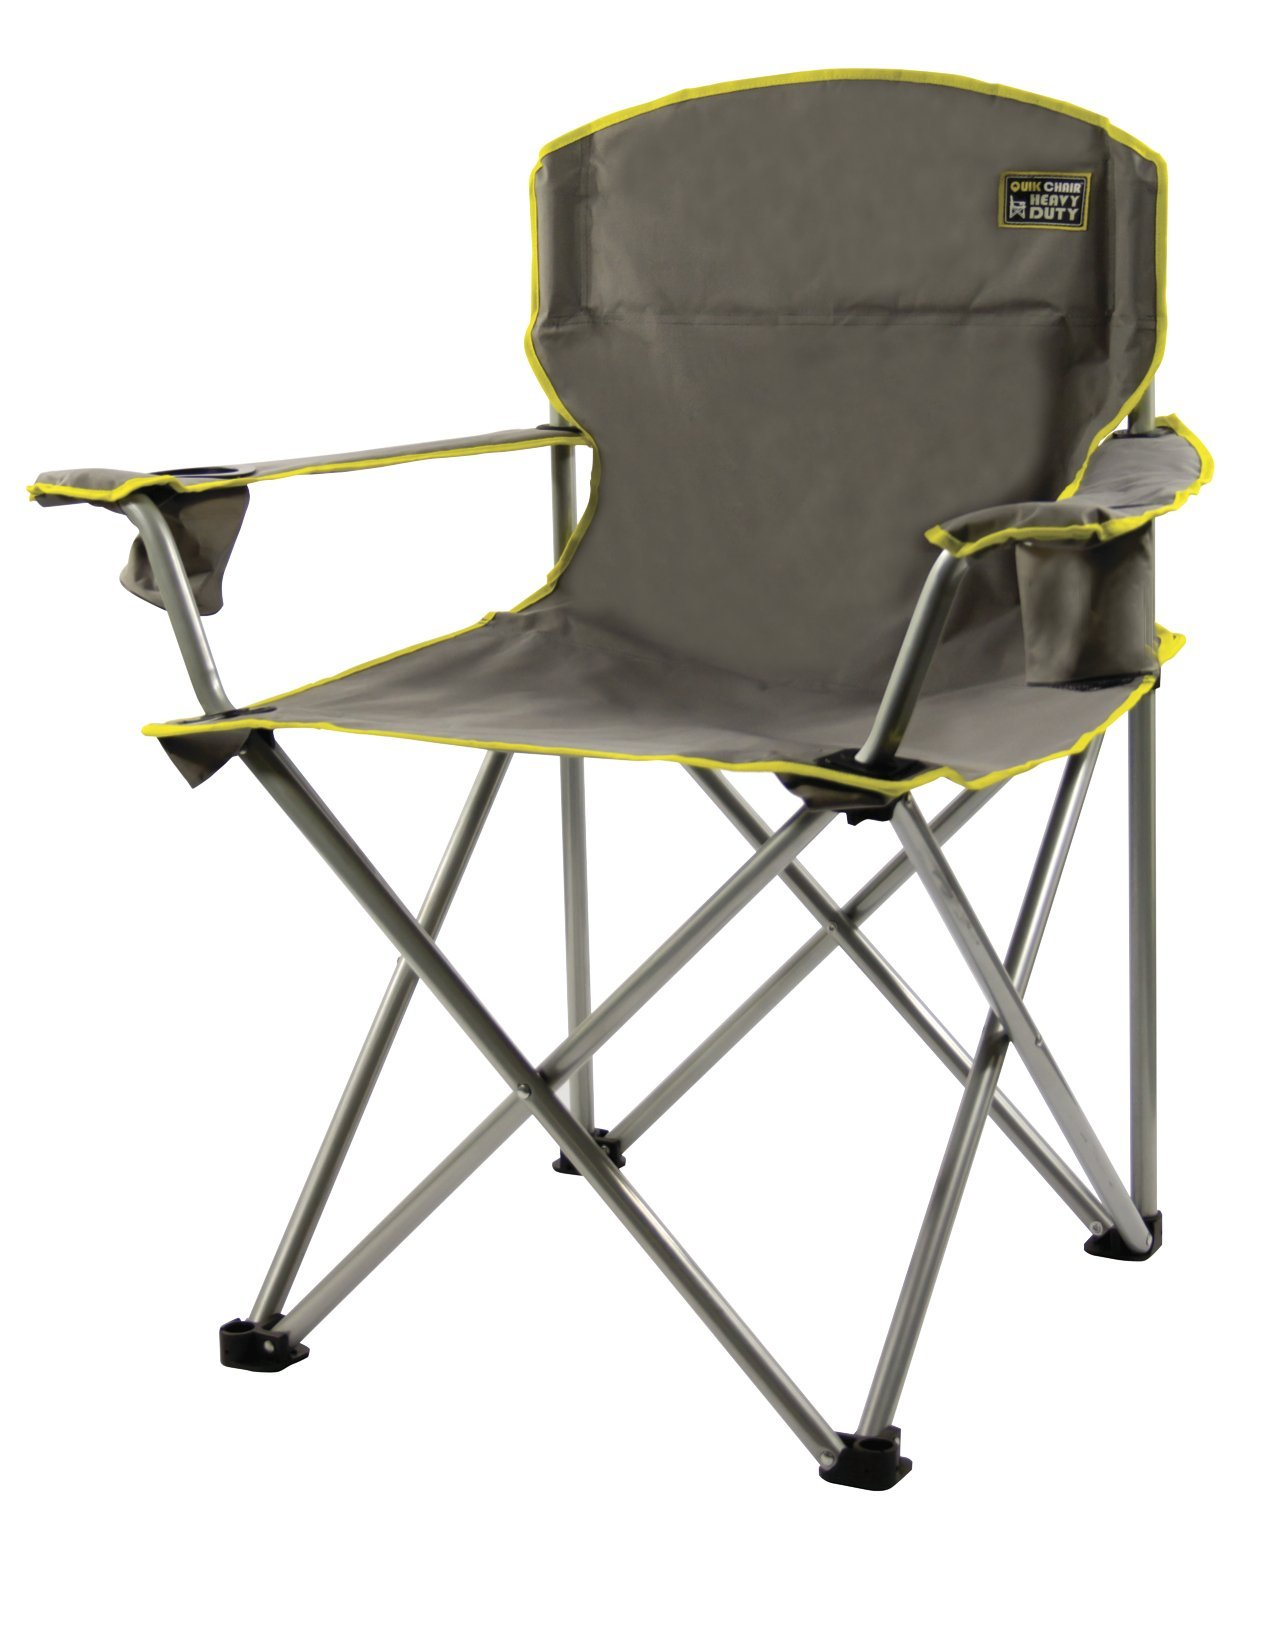 Folding Bag Chair Folding Camping Chair Carry Bag Heavy Duty 500 Lb Capacity